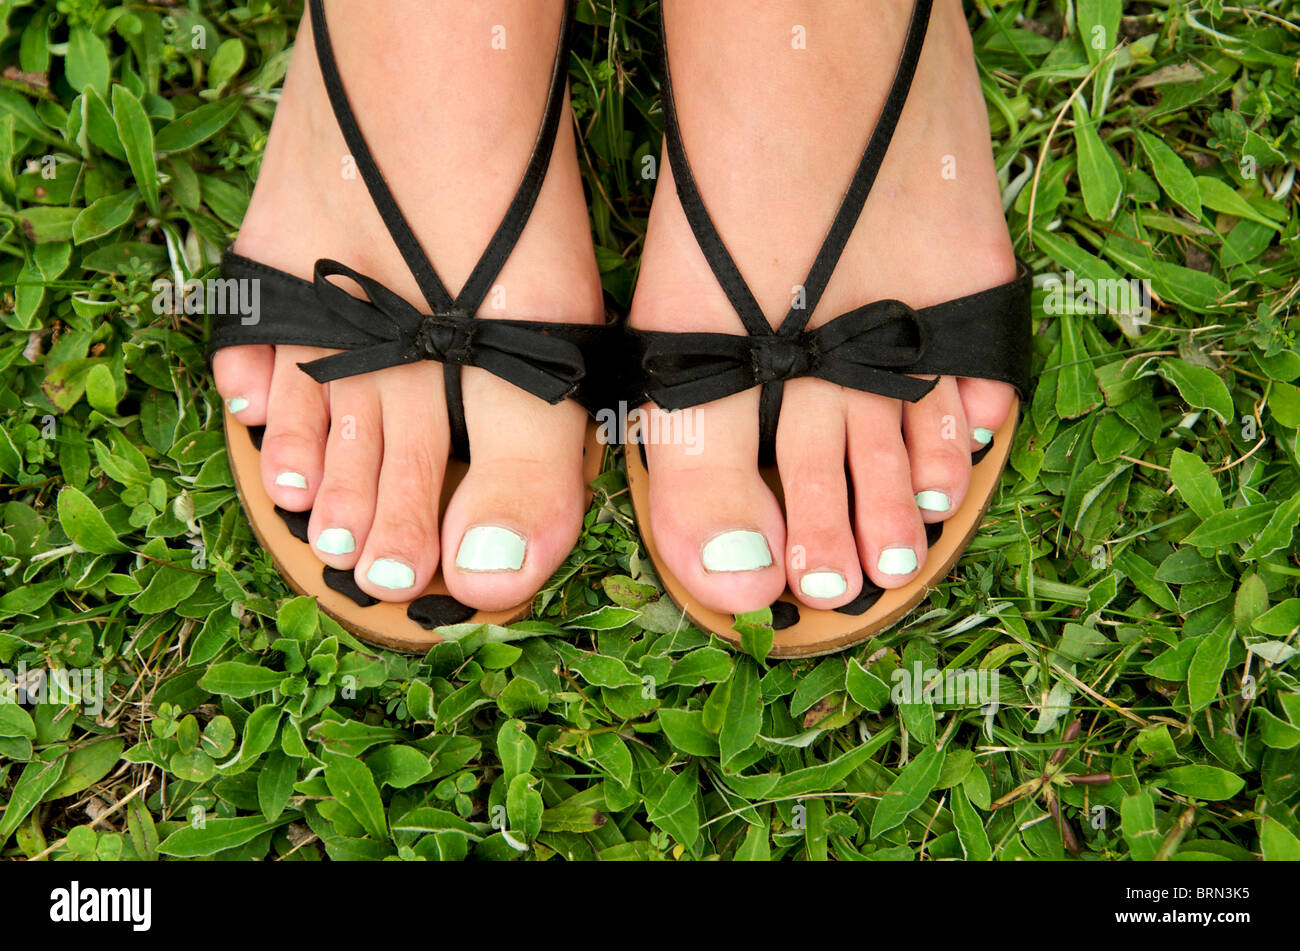 f98d208ee Close-up on the bare feet and varnished toe nails of a young woman -